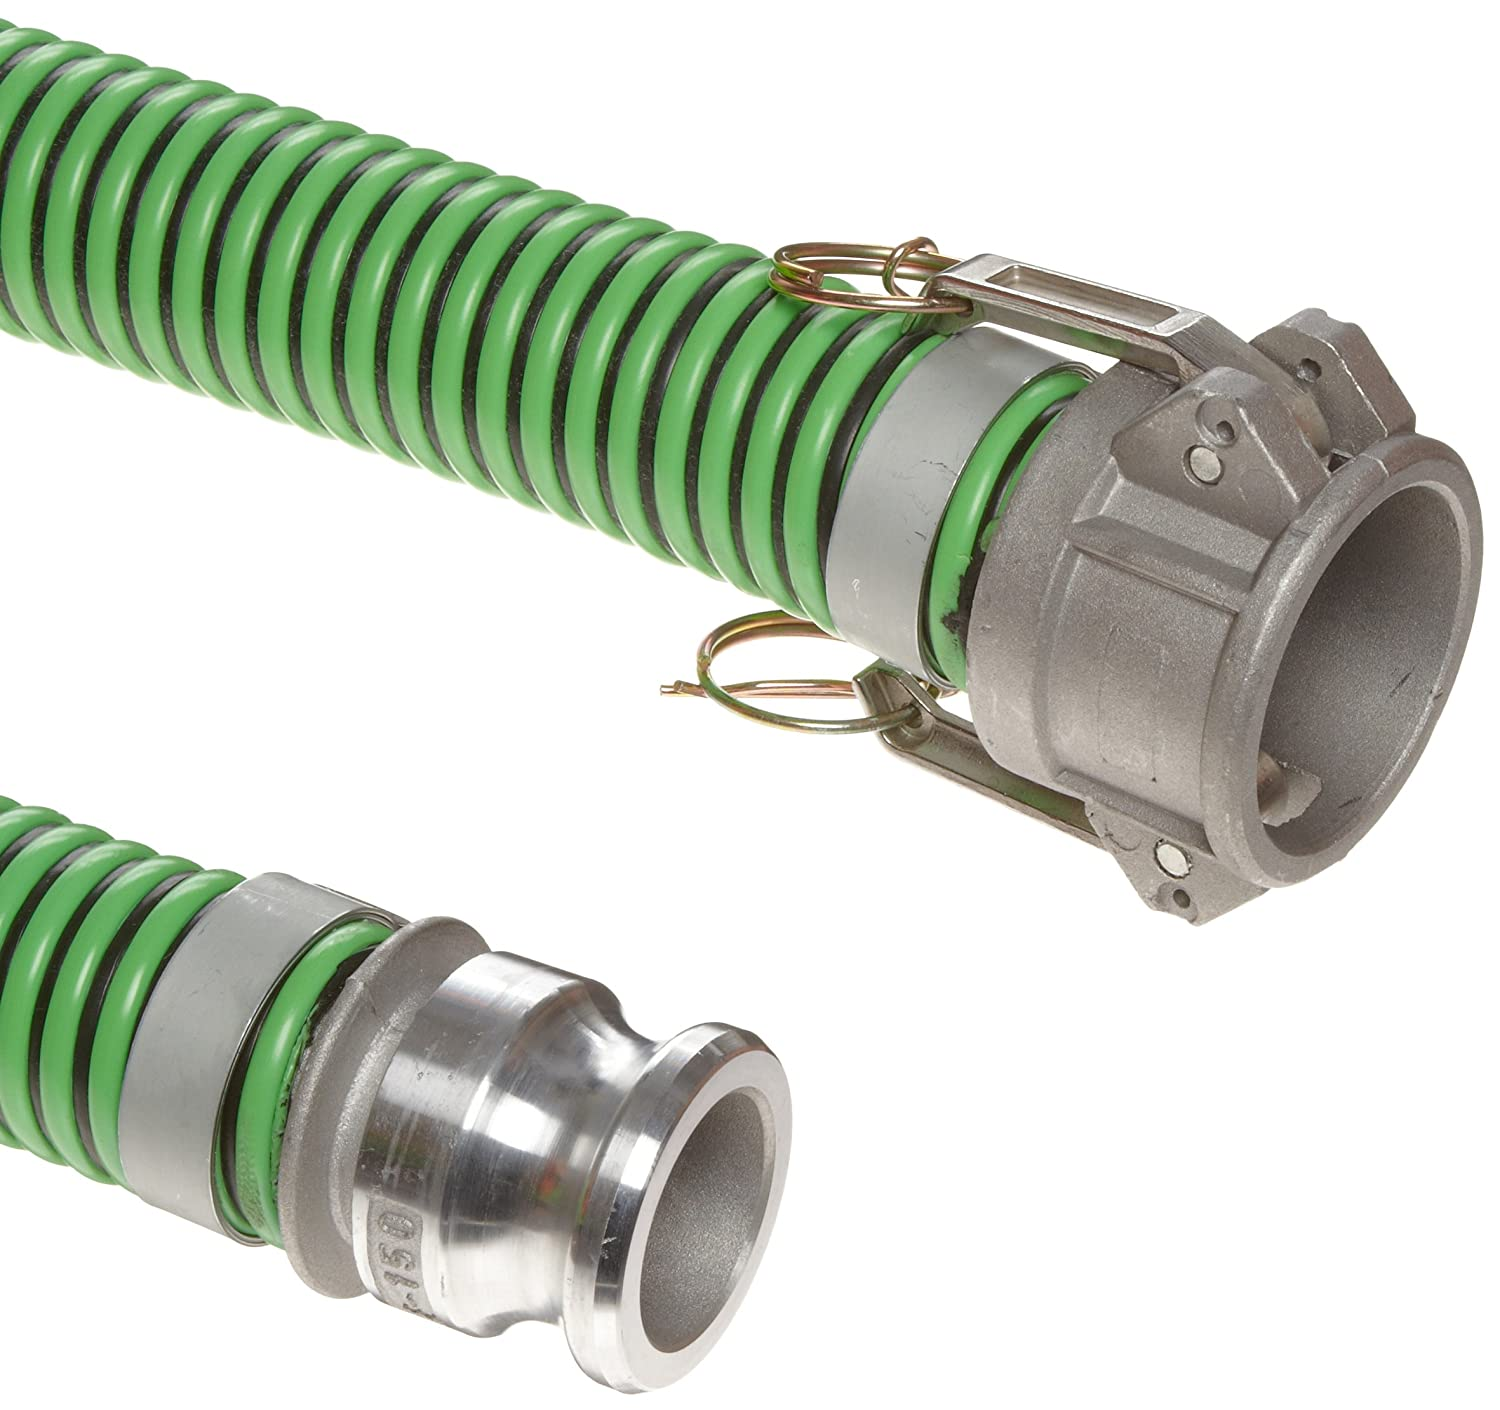 10 Length 29.8 Hg Vacuum Rating 45 PSI Maximum Pressure 3 ID Black Cover with Green Helix 3 Aluminum Cam and Groove Connection 10/' Length 3 ID 3 Aluminum Cam and Groove Connection Unisource 1400 PVC Suction//Discharge Hose Assembly